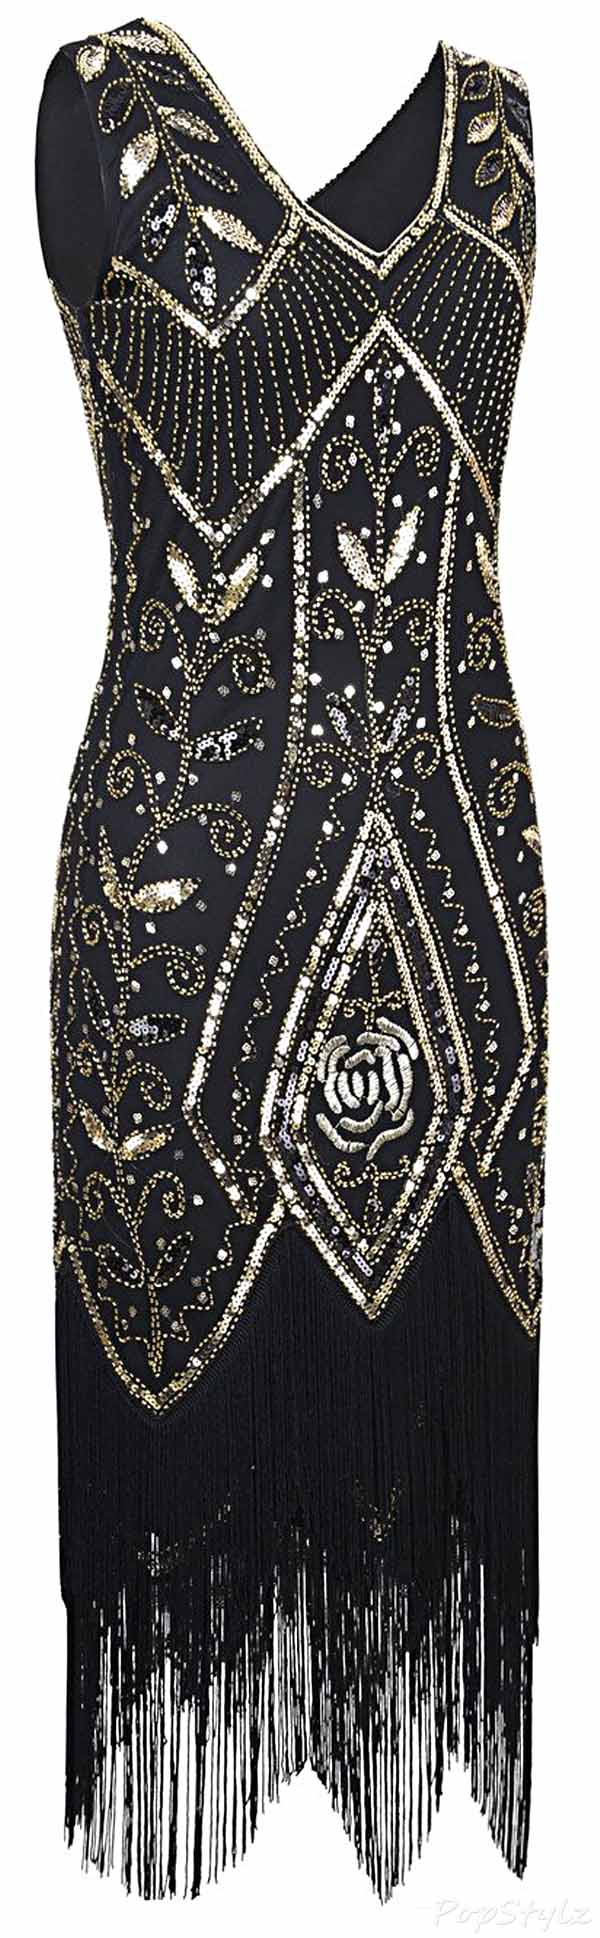 PrettyGuide 1920's Sequin Fringed Flapper Dress